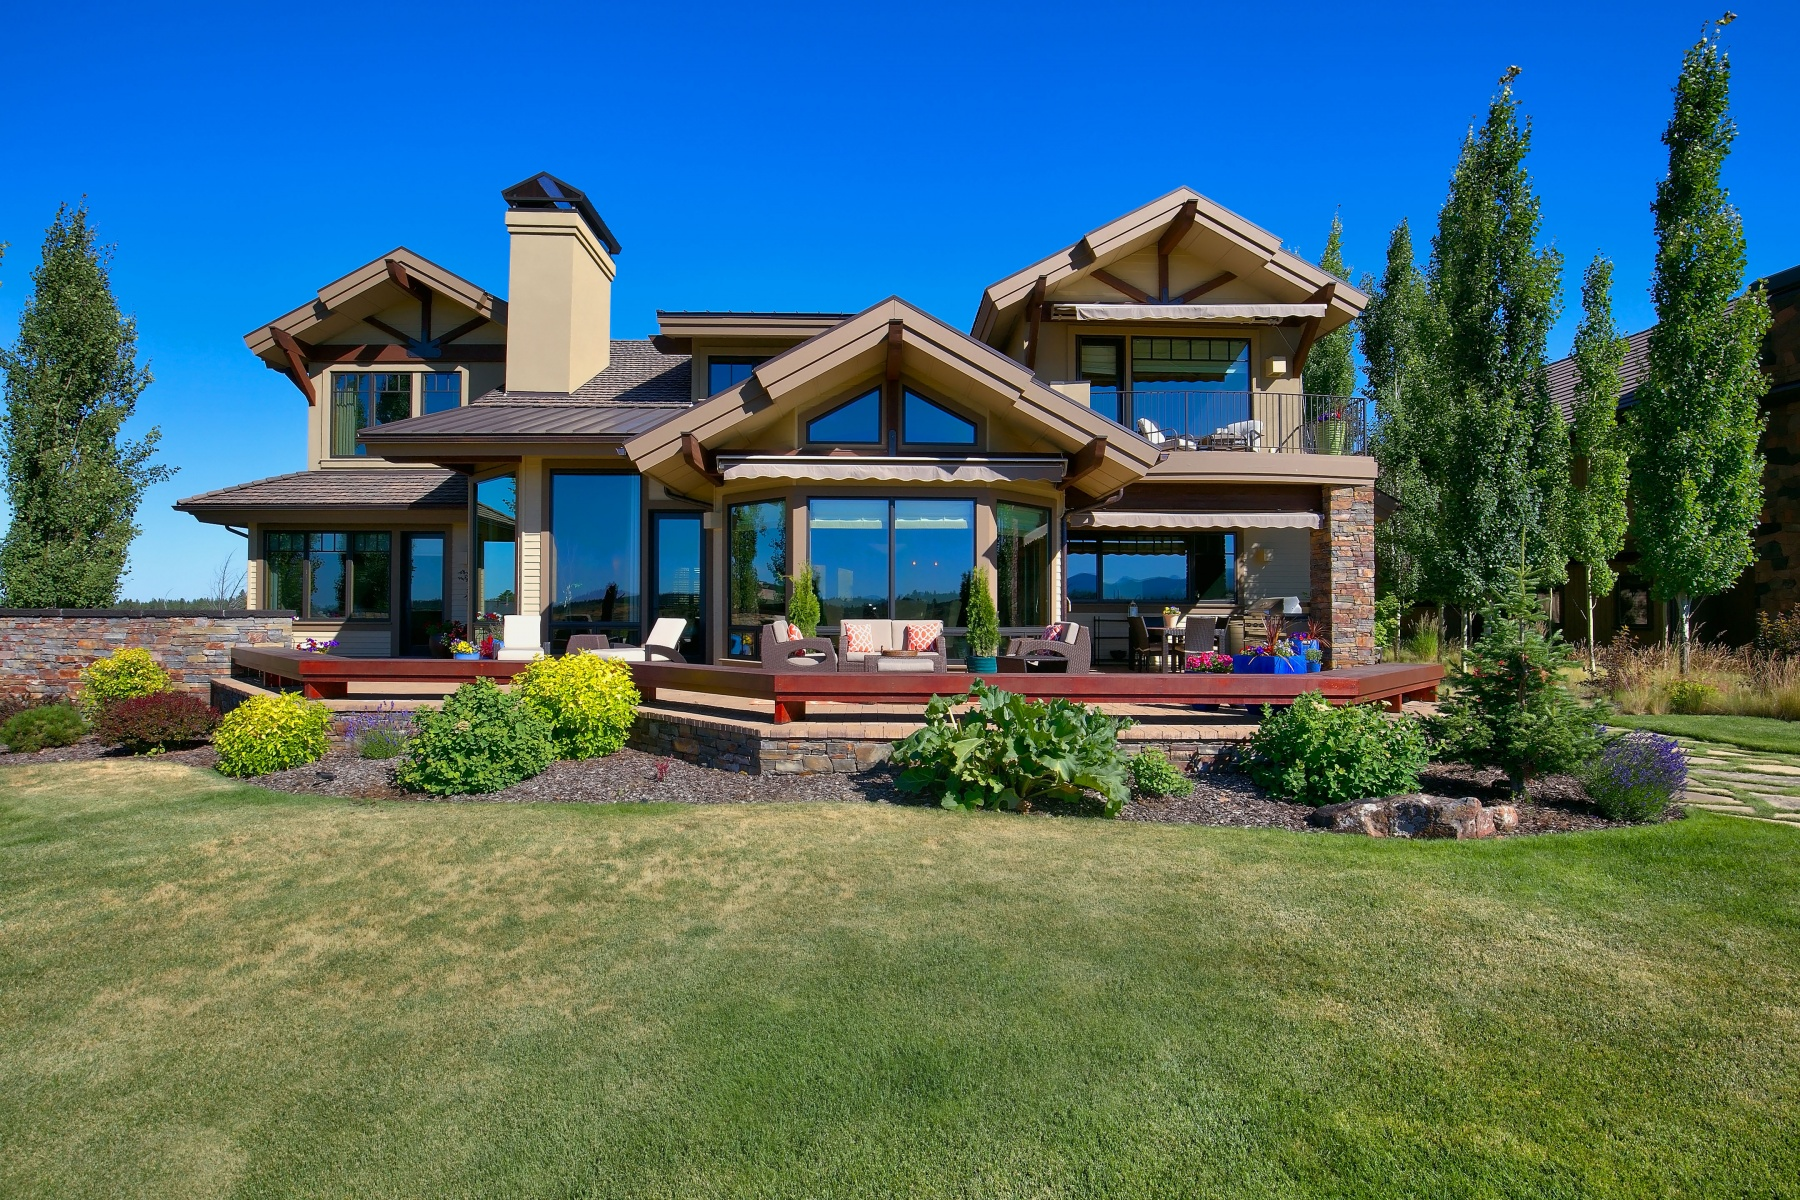 Single Family Home for Sale at Exsquisite Custom Home in Tetherow 61451 Skene Trail Bend, Oregon, 97702 United States